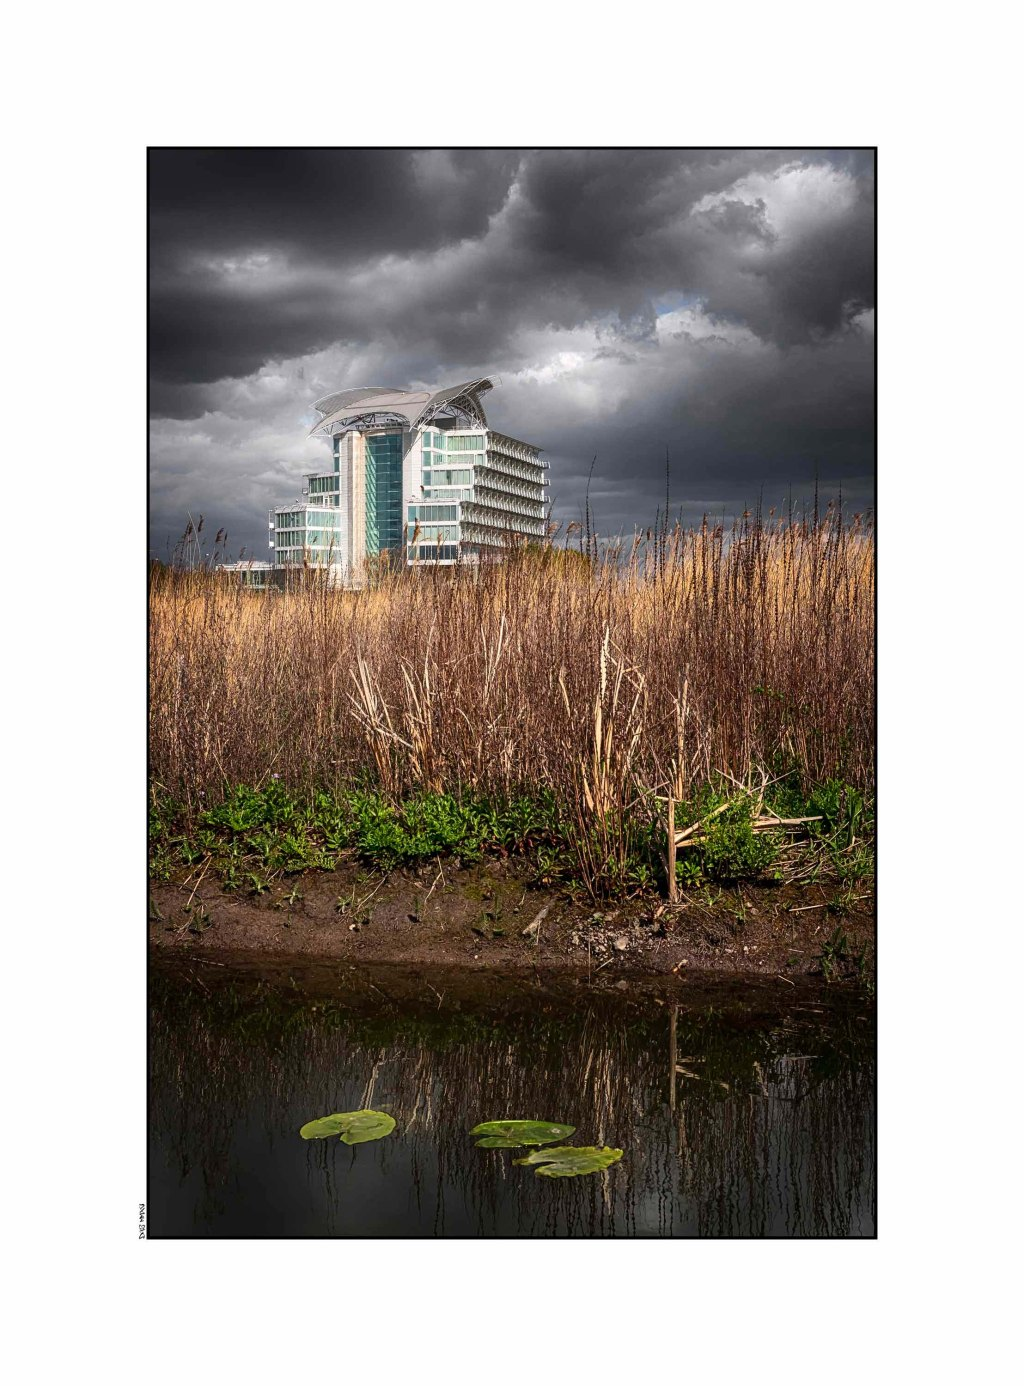 St David's Hotel - Wetlands, Cardiff Bay 2016 #2 low srgb